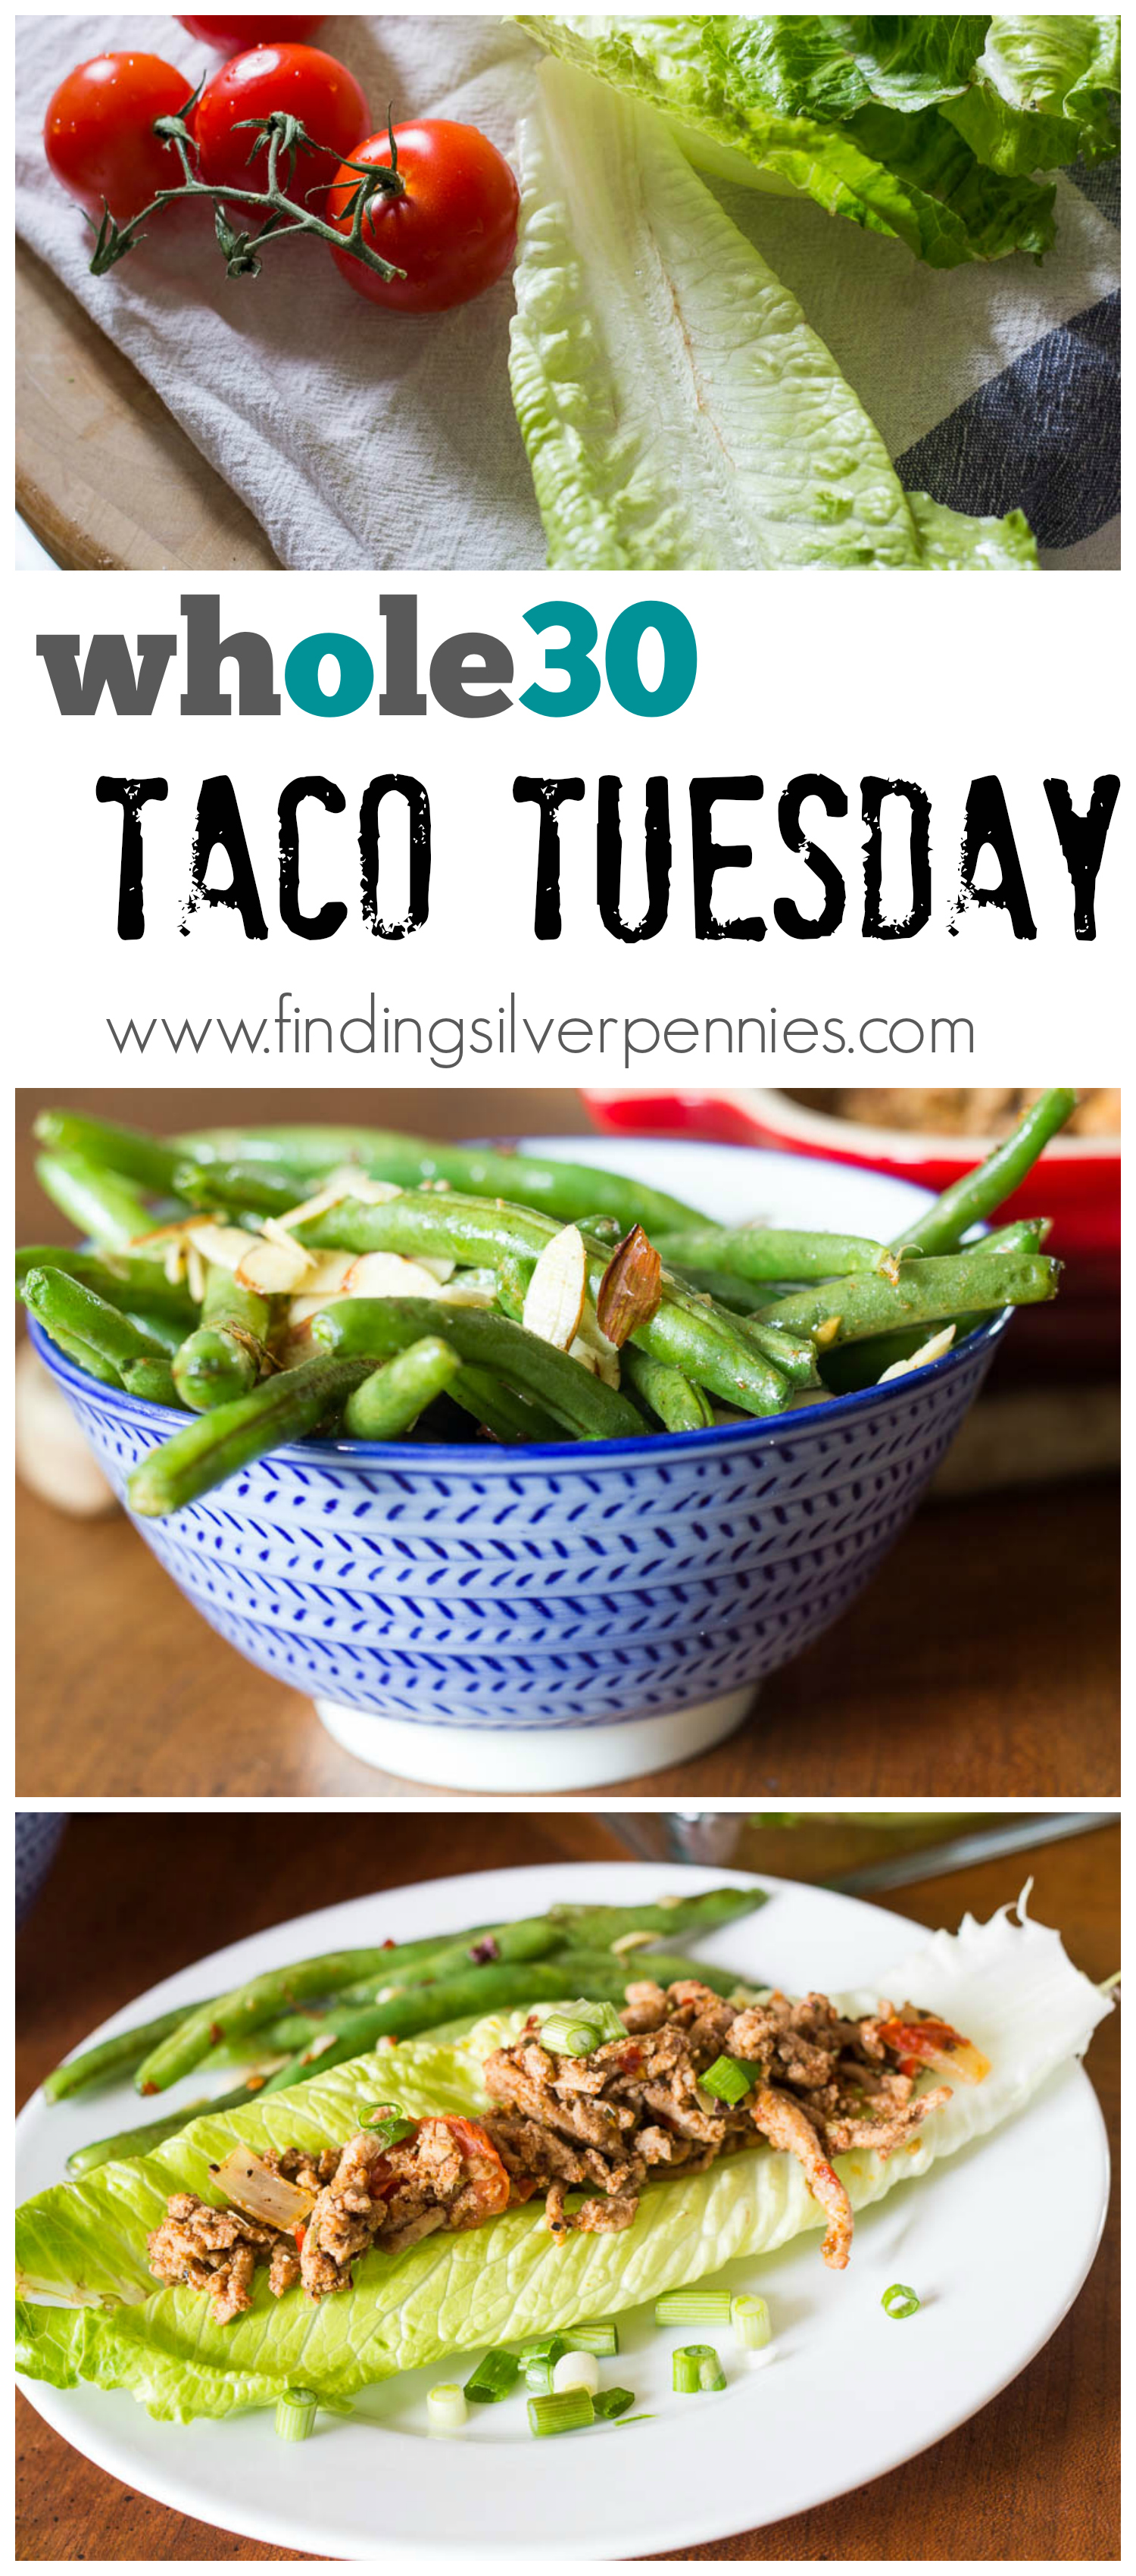 Whole30 Taco Recipes I Finding Silver Pennies